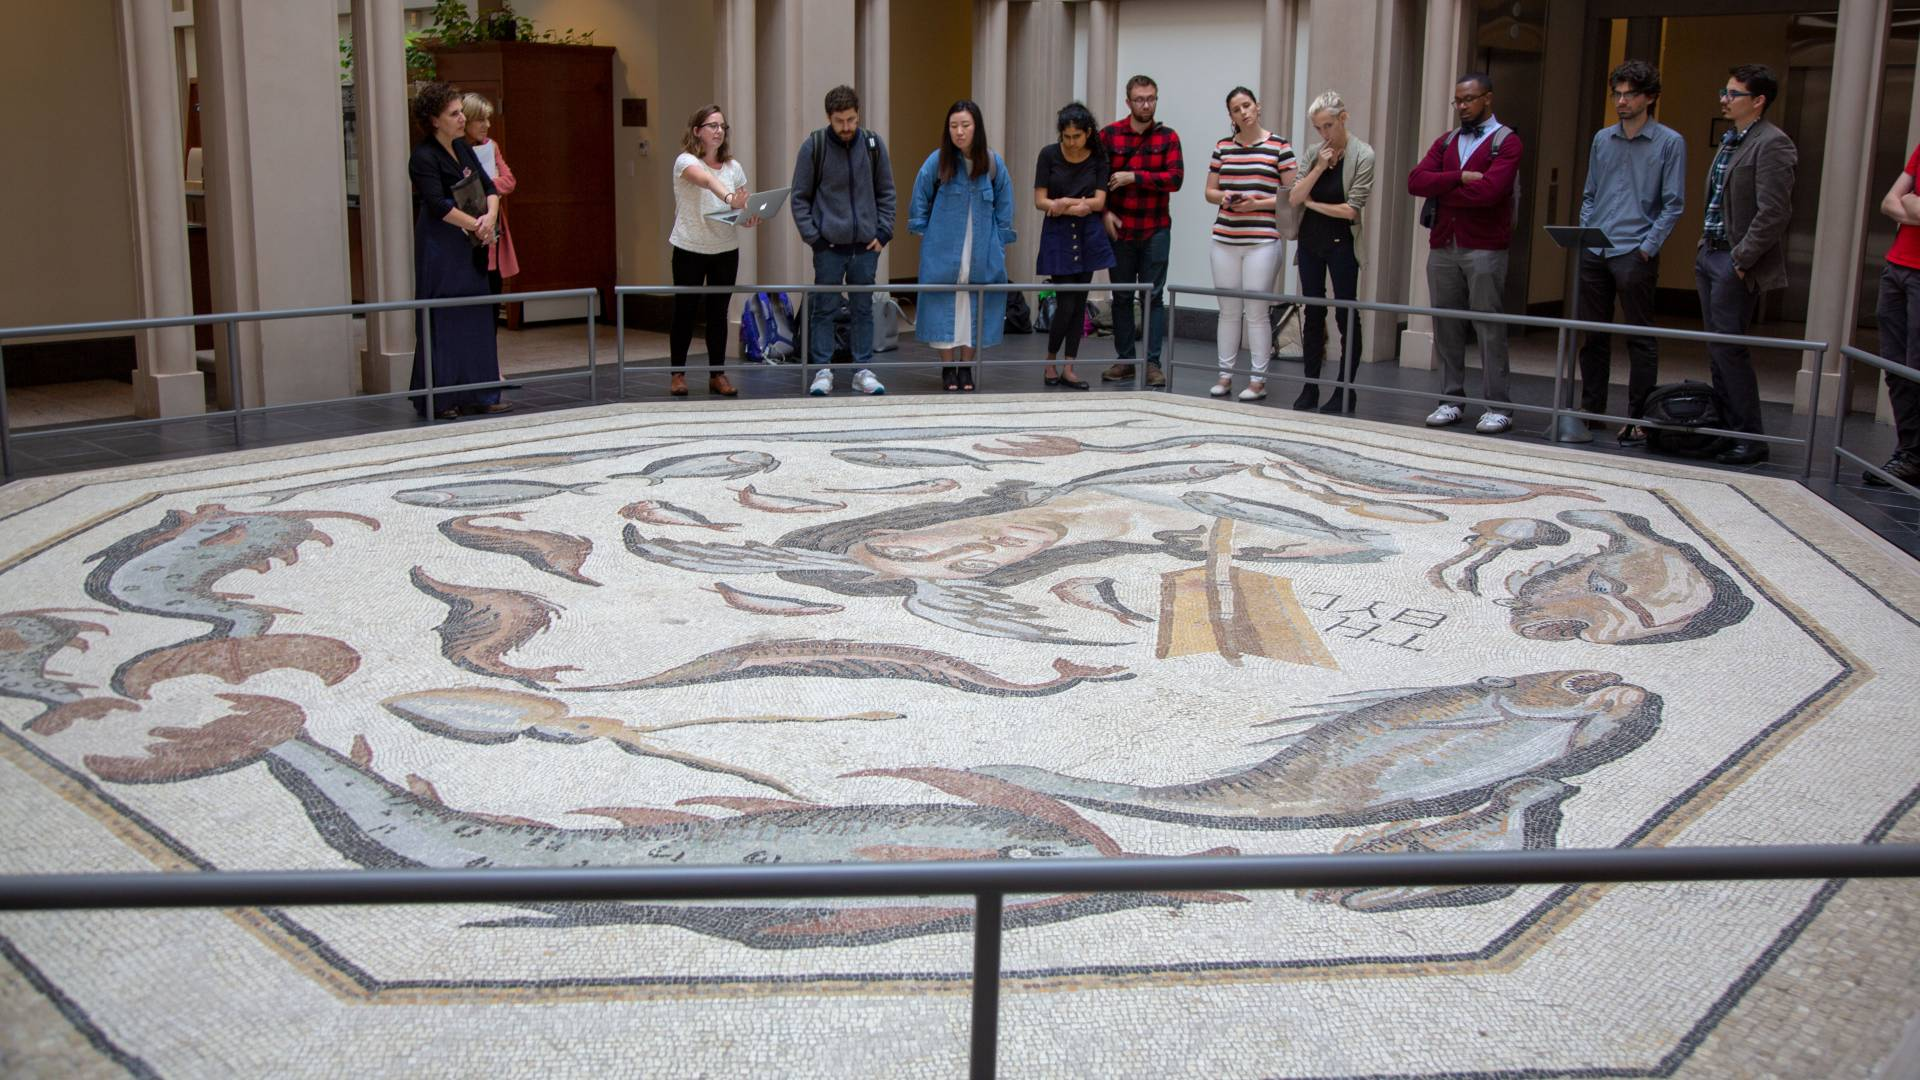 Students looking at large mosaic at Harvard museum